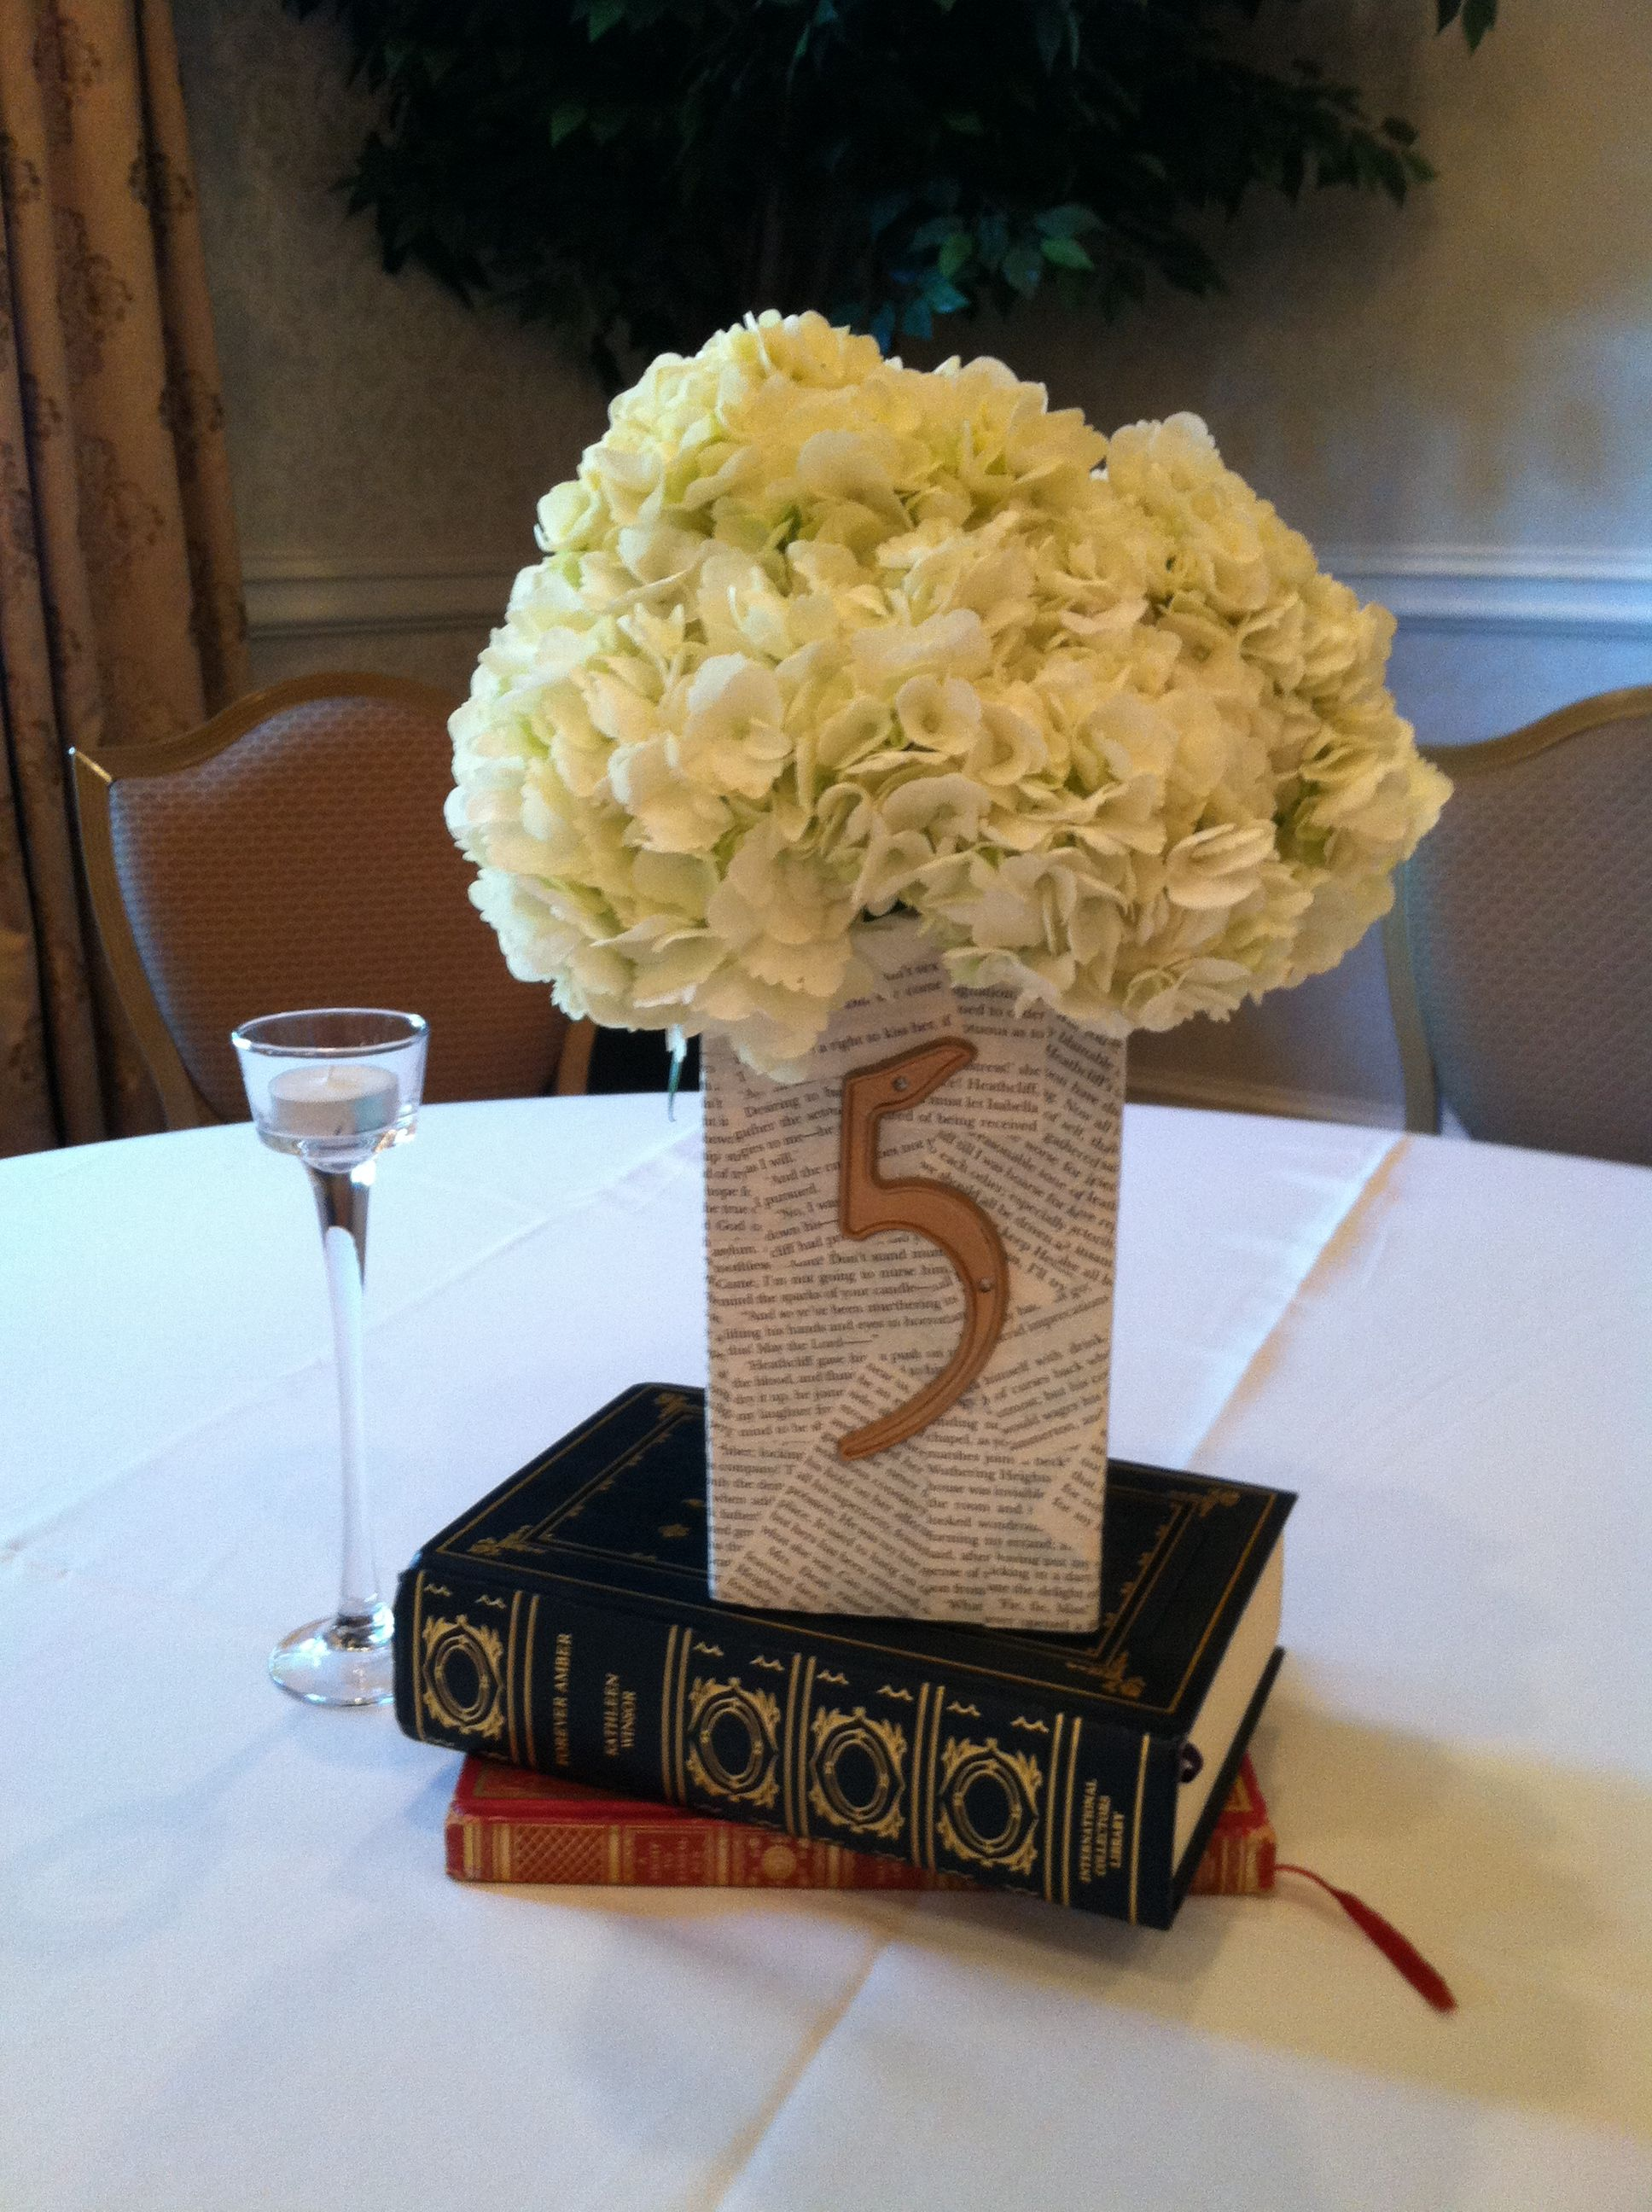 We love creative brides! Book themed wedding centerpieces / table numbers with white hydrangea